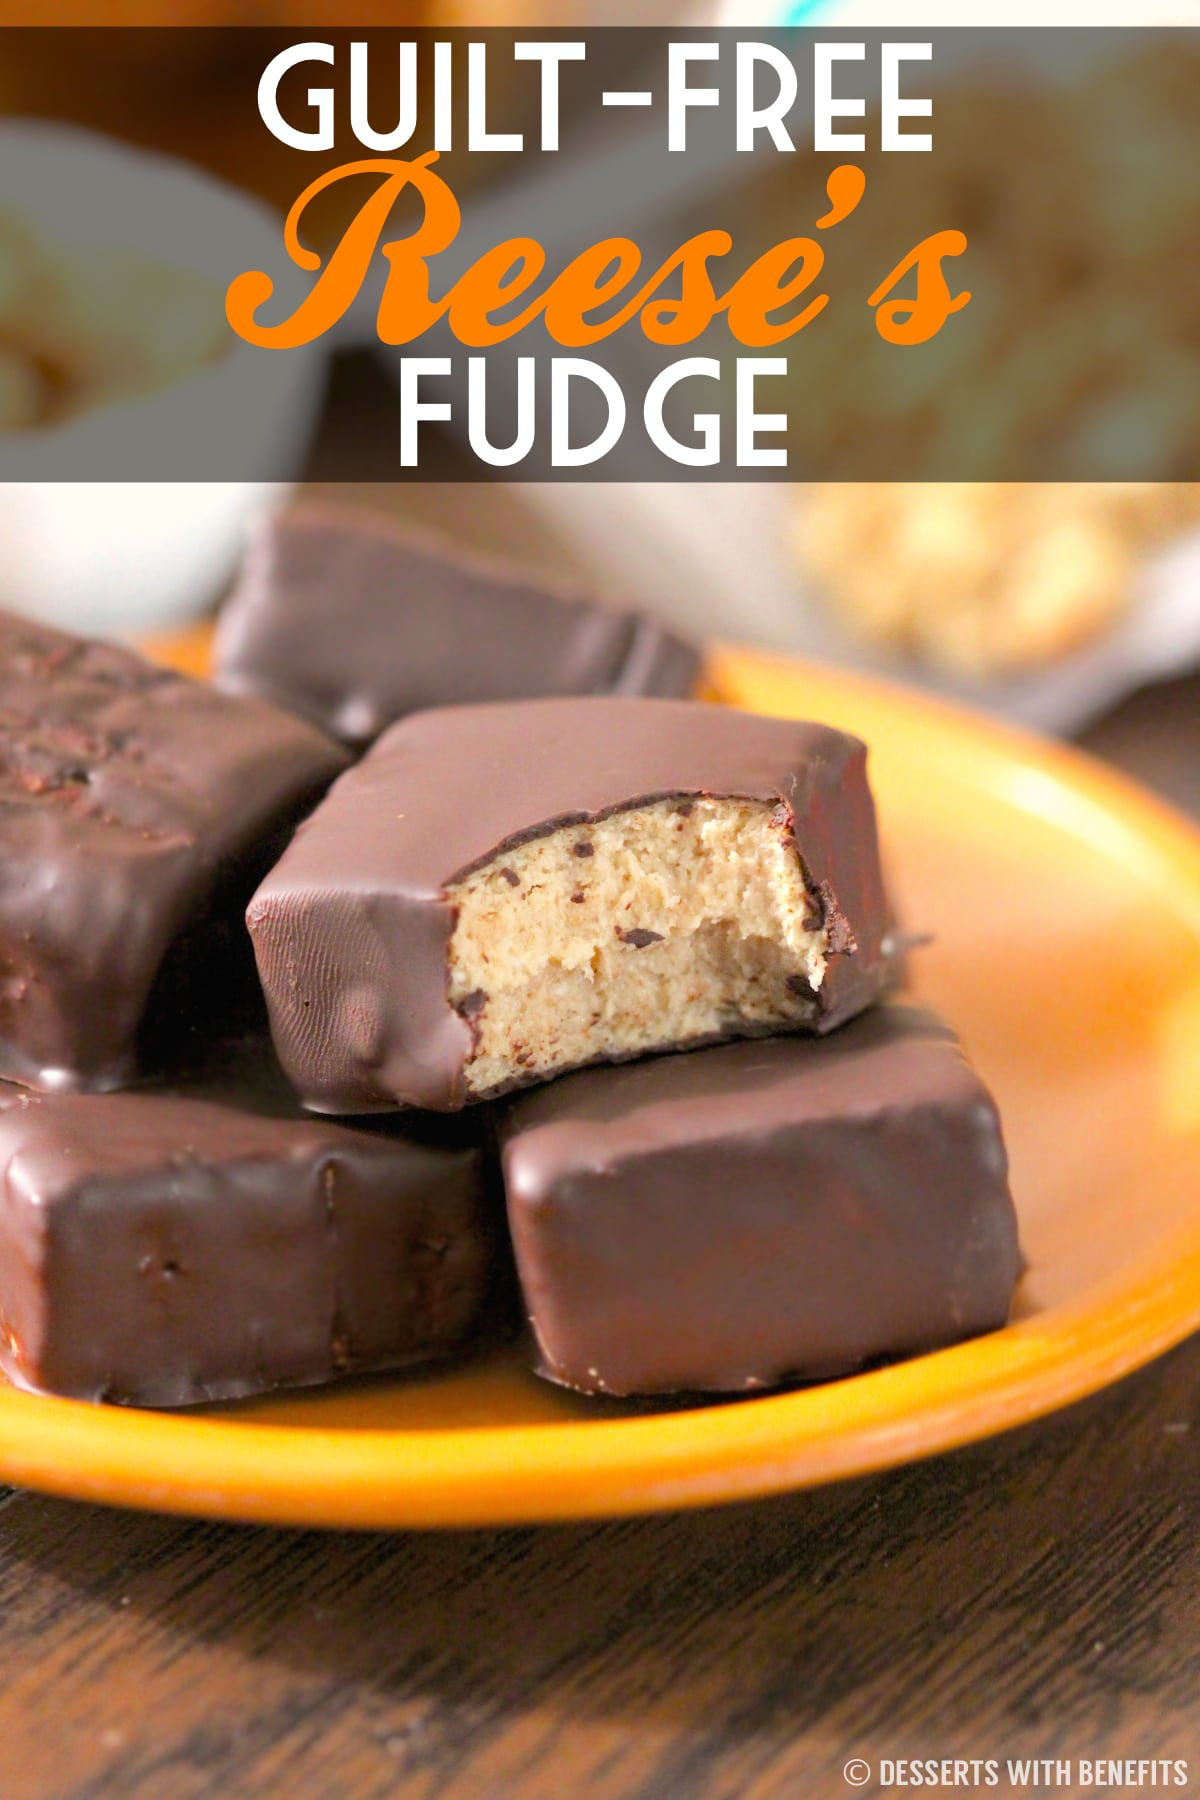 This Healthy Reese's Fudge is packed with peanut butter and chocolate flavor, you'd never know it's low sugar, low fat, high protein, and gluten free!